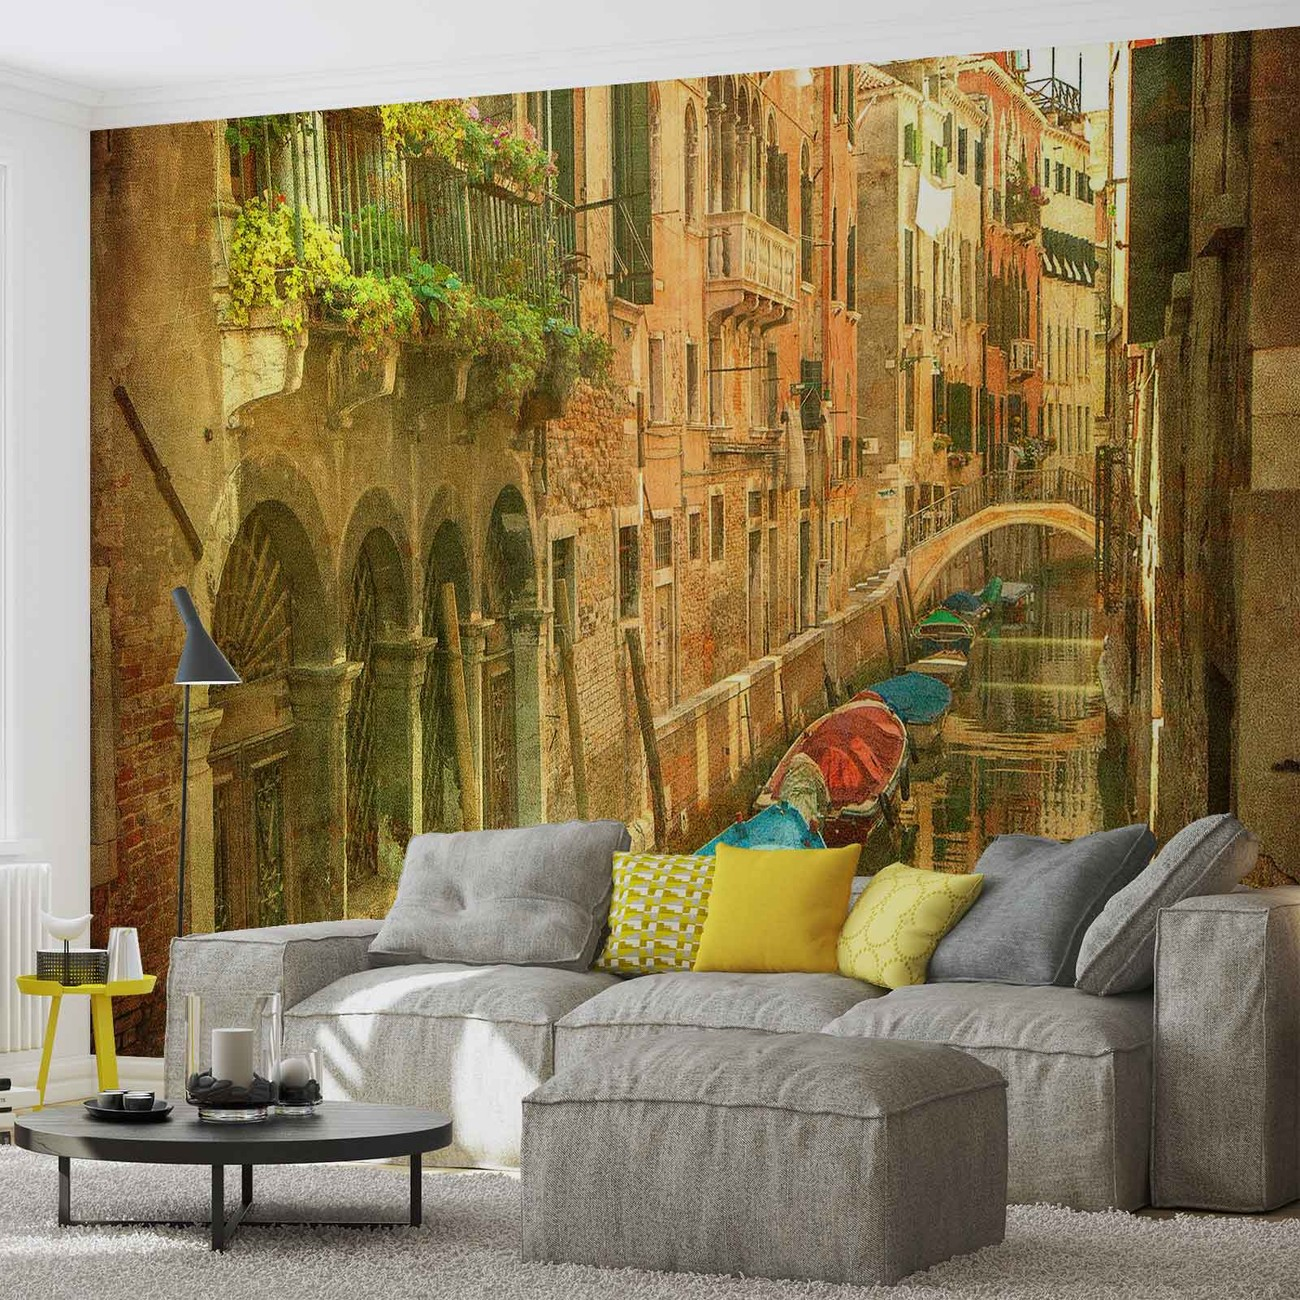 City venice canal wall paper mural buy at europosters for City wallpaper mural